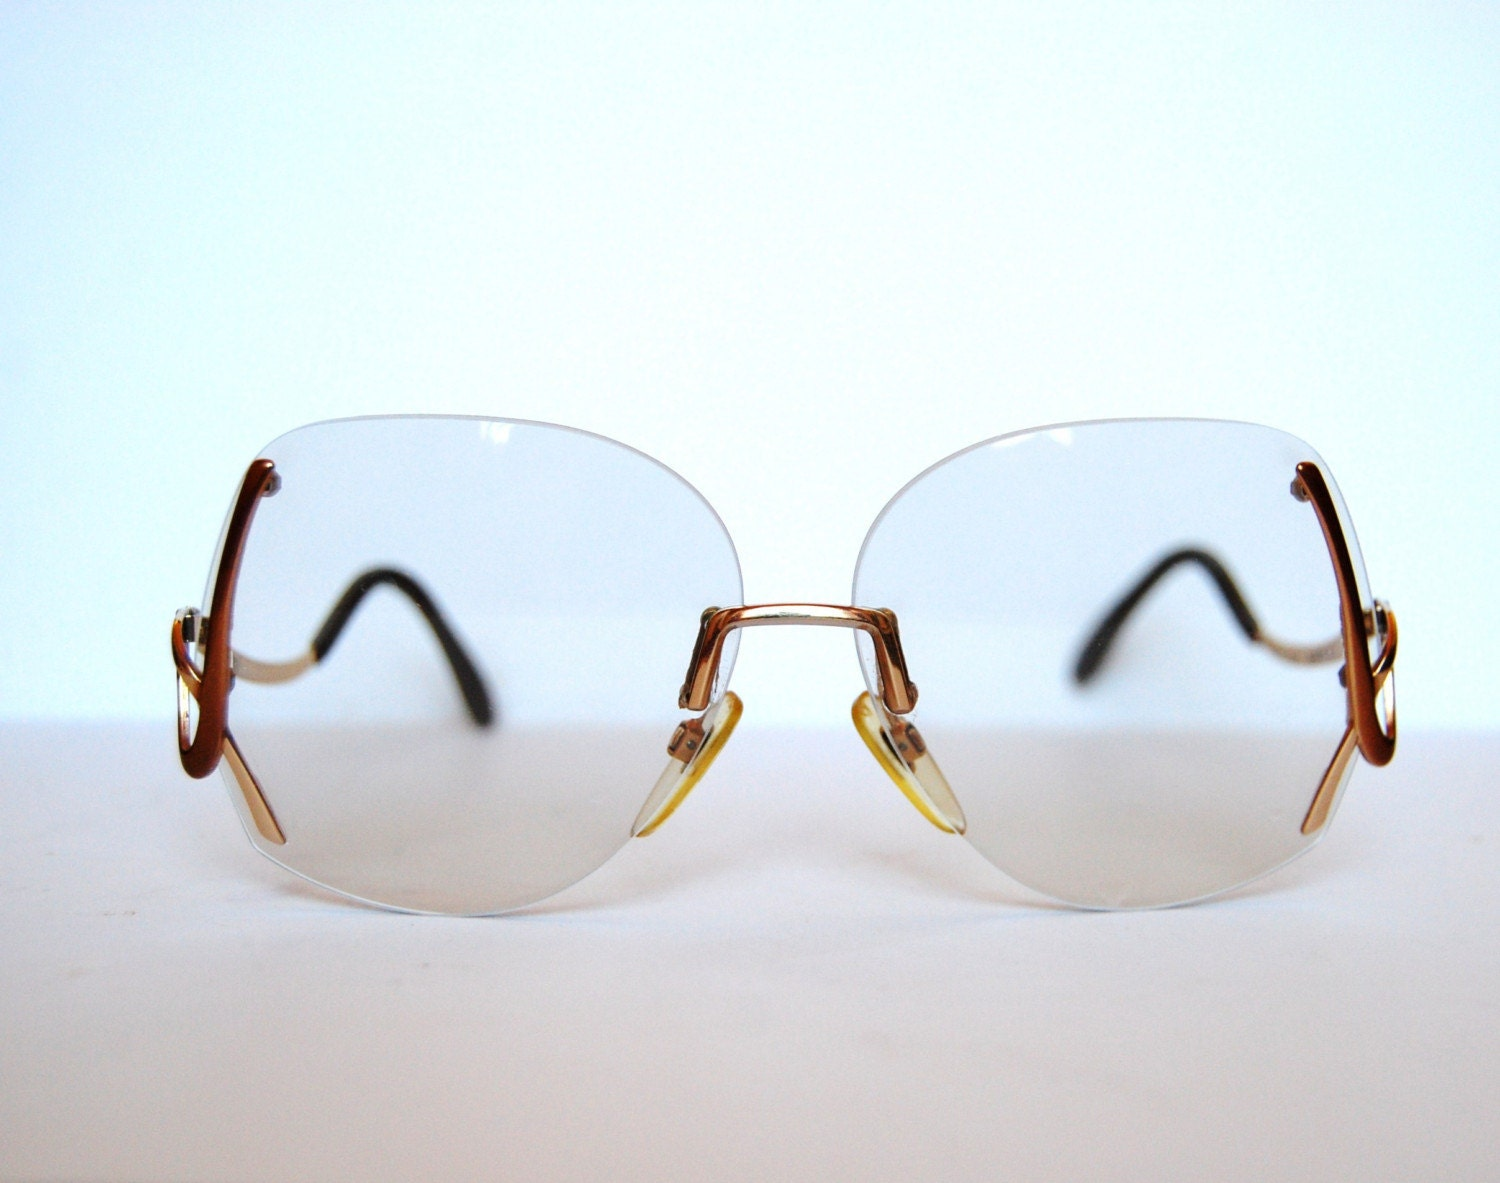 Vintage Rodenstock sunglasses spectacles Germany by RetroEyewear from etsy.com